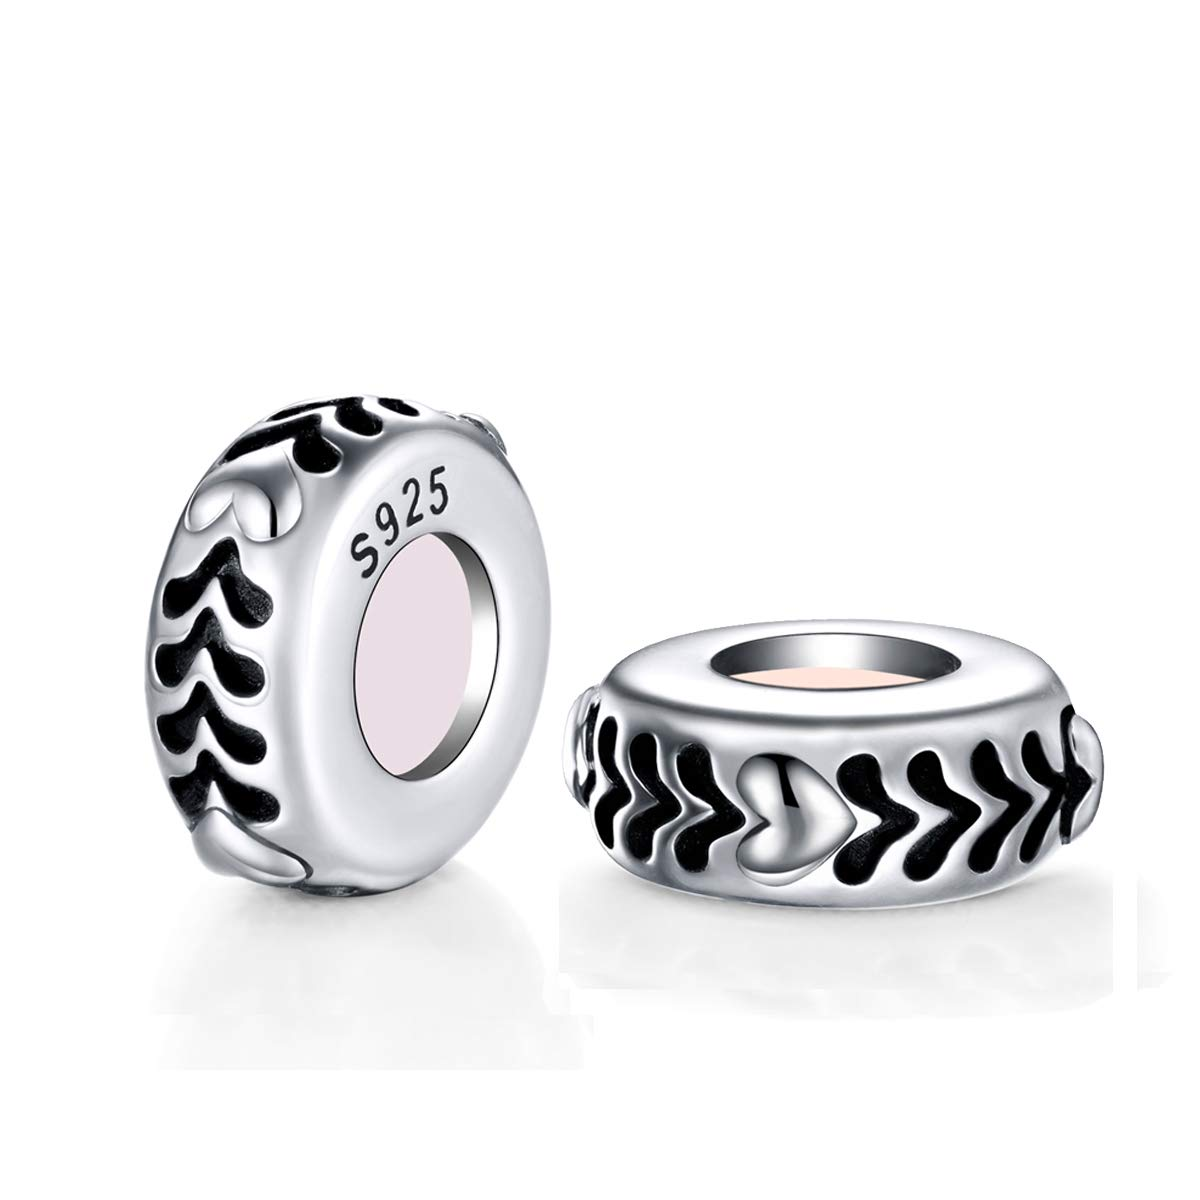 GW 2PCS Spacer Beads Stopper Charms Sterling Silver Charms Safety Beads CZ Bead for Bracelets DIY